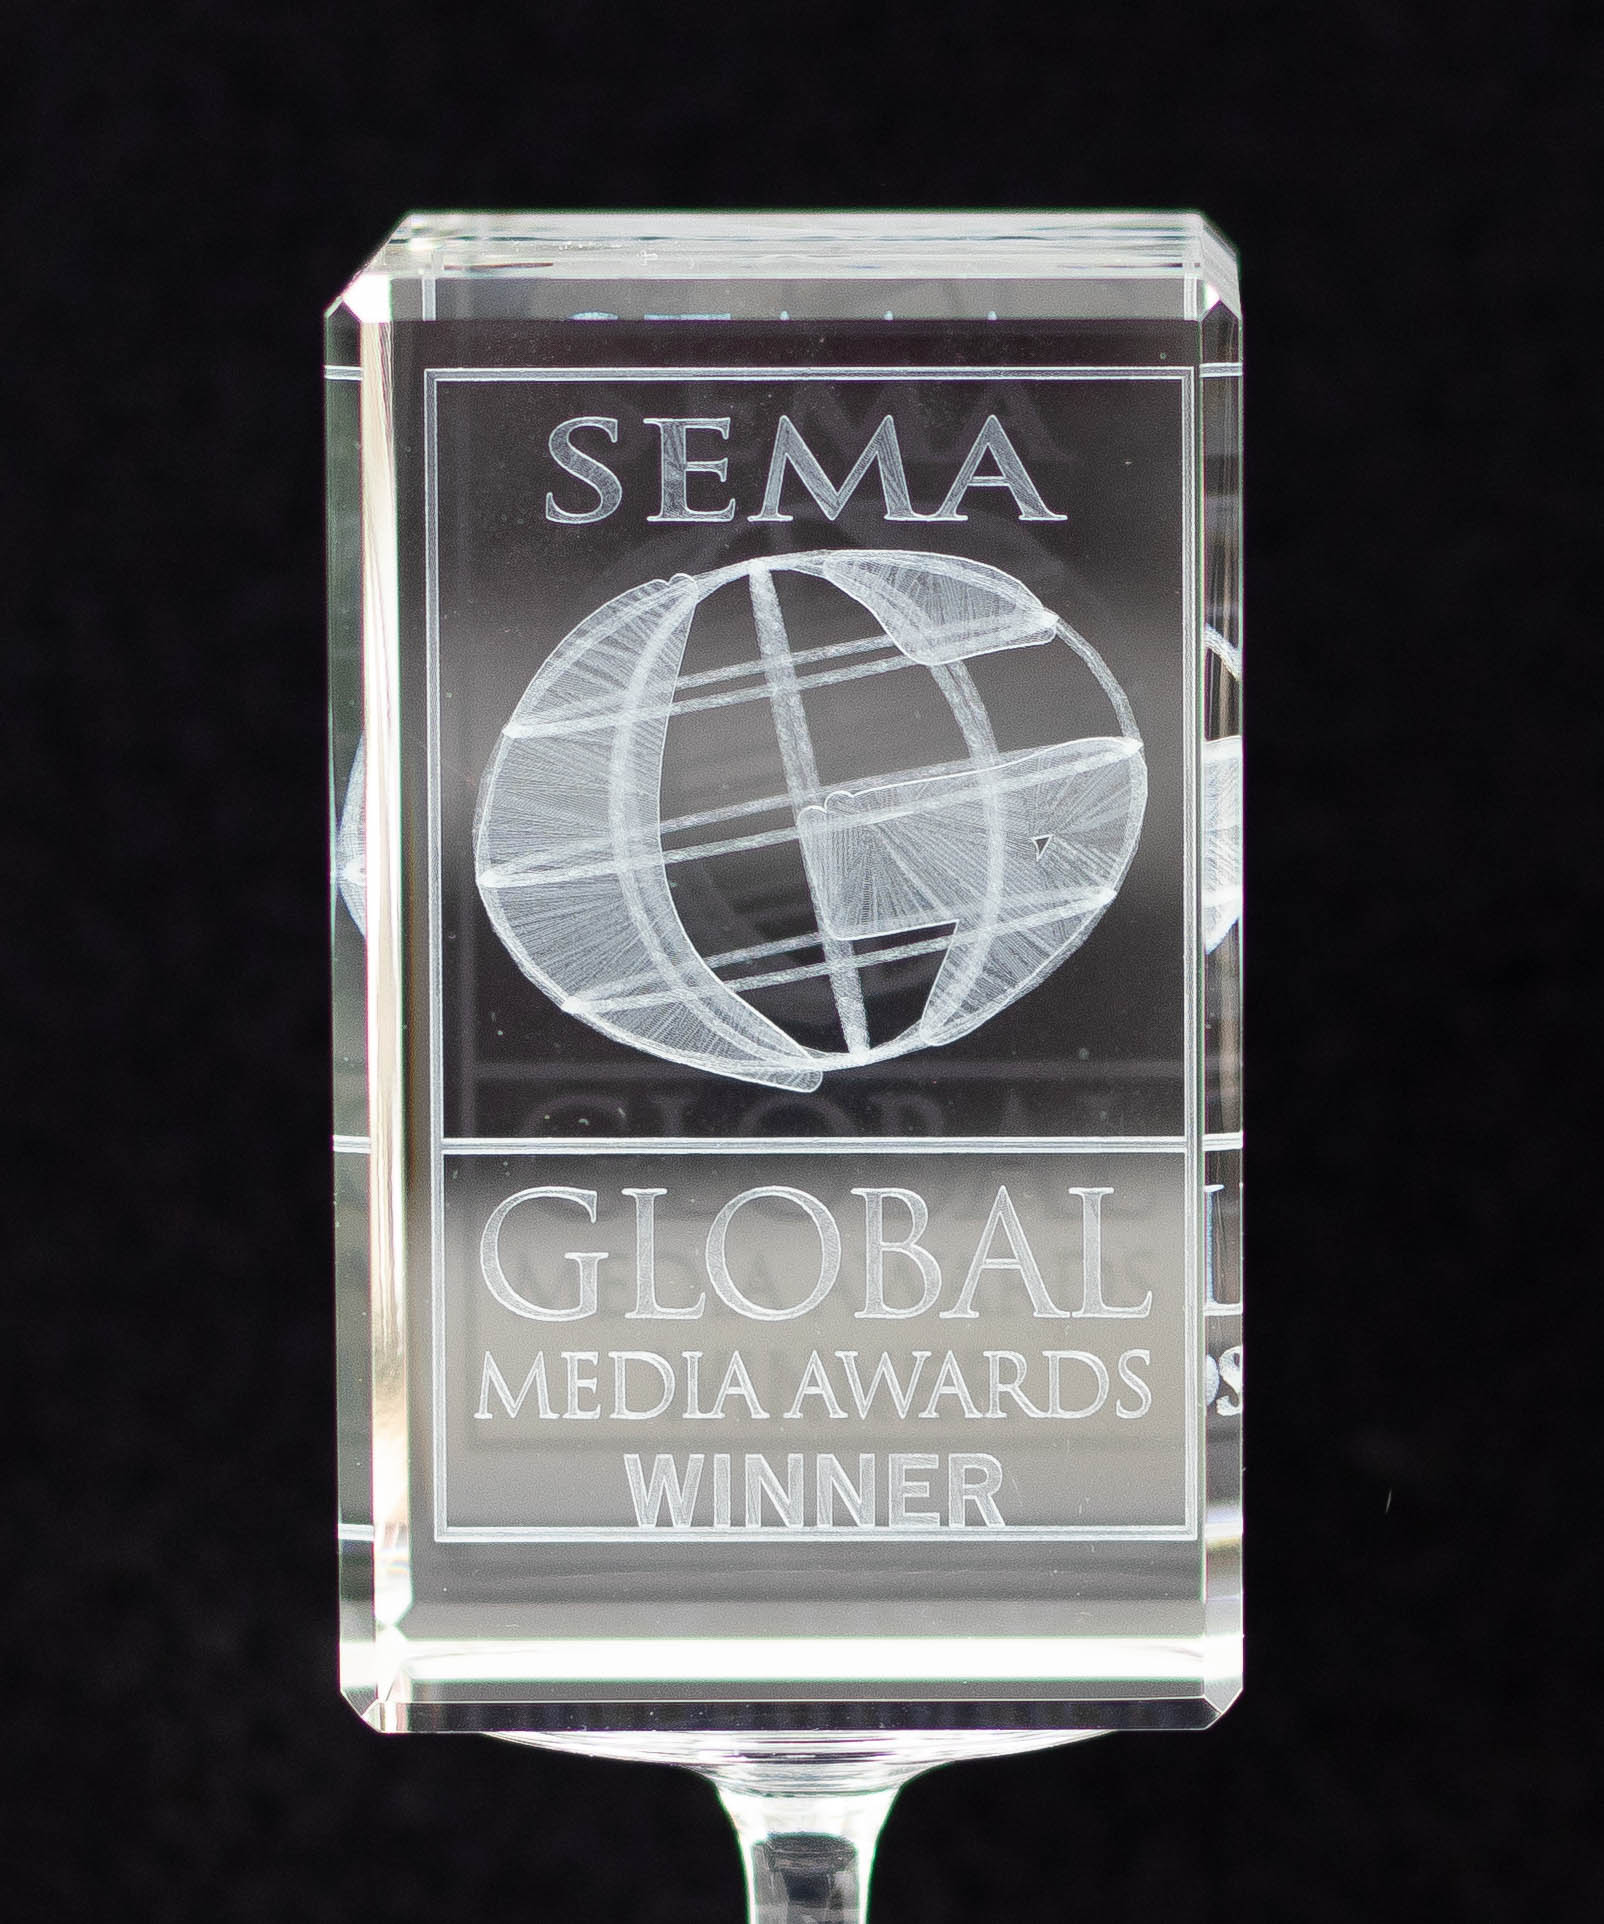 MiG Buddy – SEMA Global Media Award